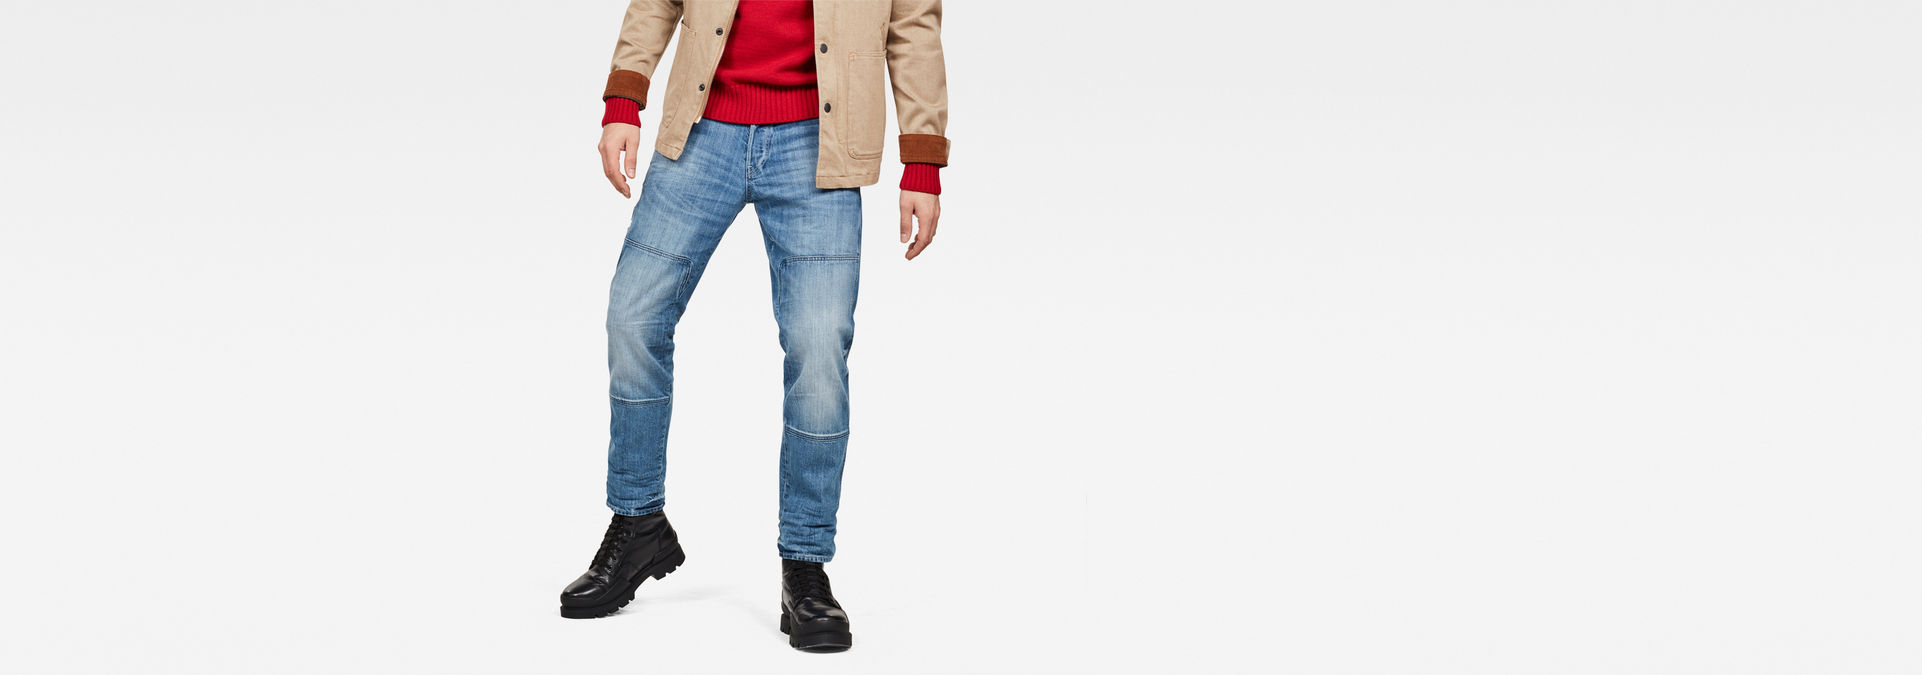 4b06a11e2ed Faeroes Straight Tapered Jeans. £ 115.00 including VAT. Uniform Of The Free.  G-Star ...